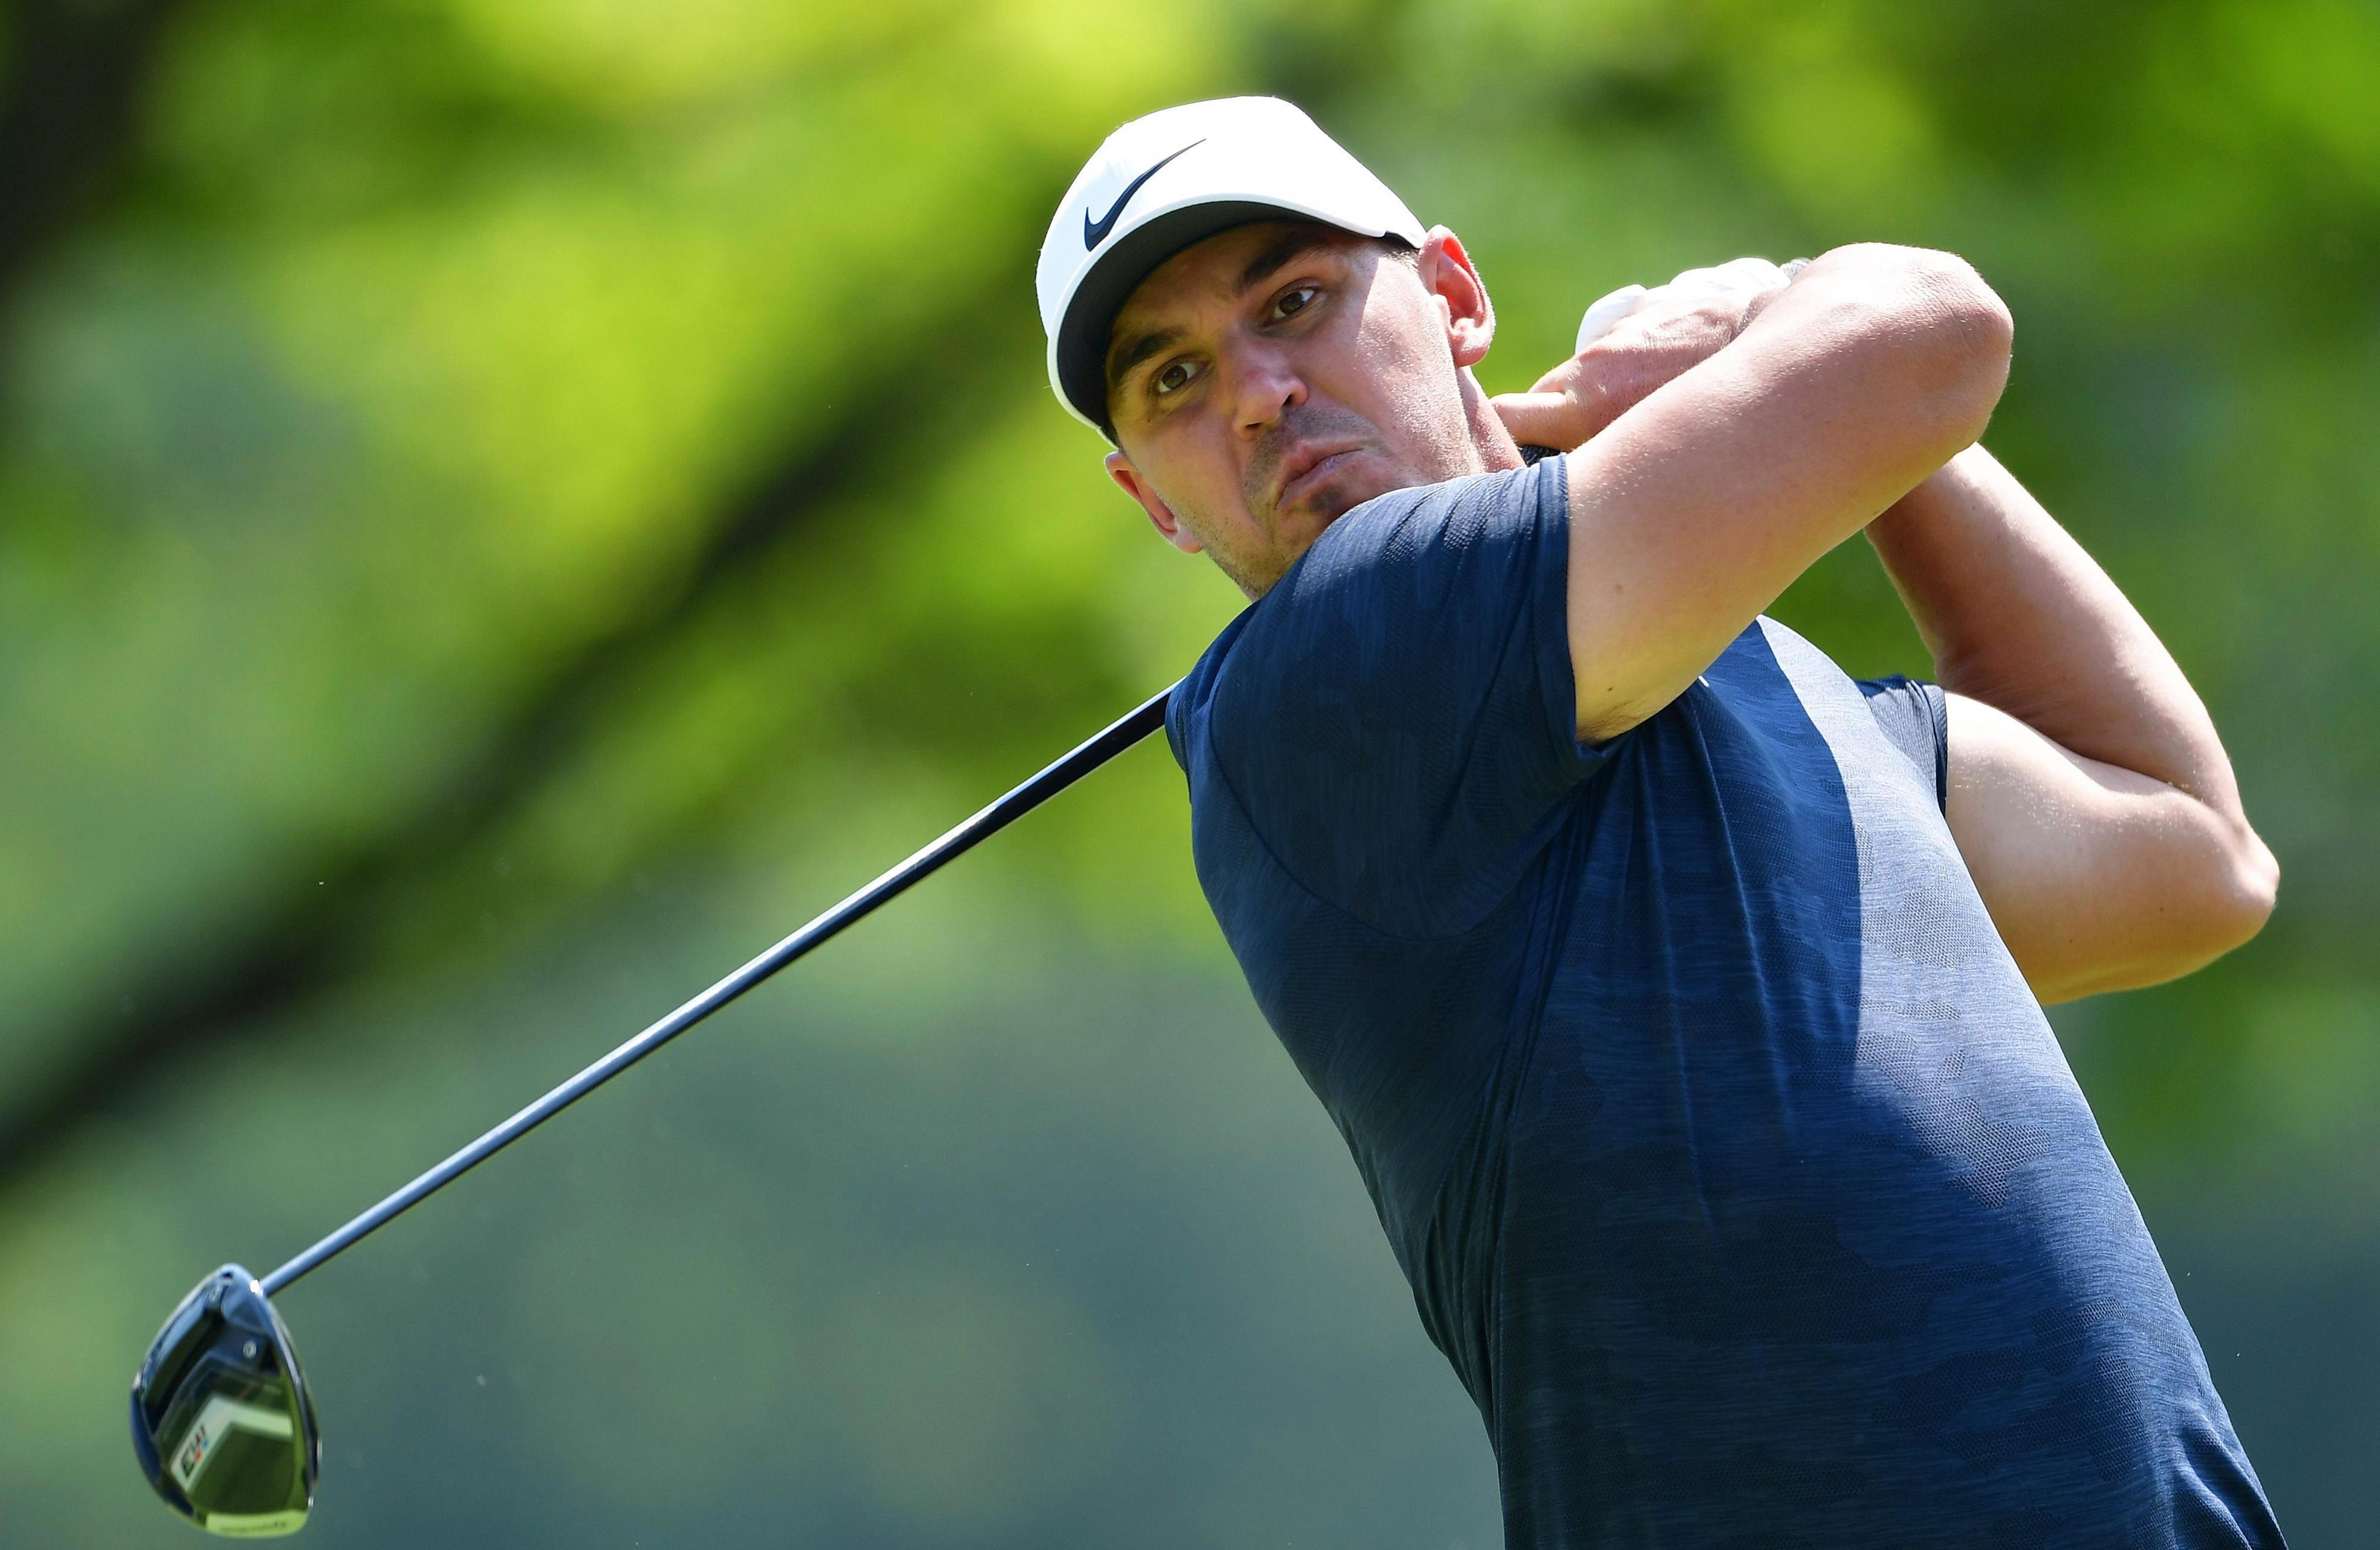 Muscleman Brooks Koepka roared up the leaderboard with a record-equalling round of 63